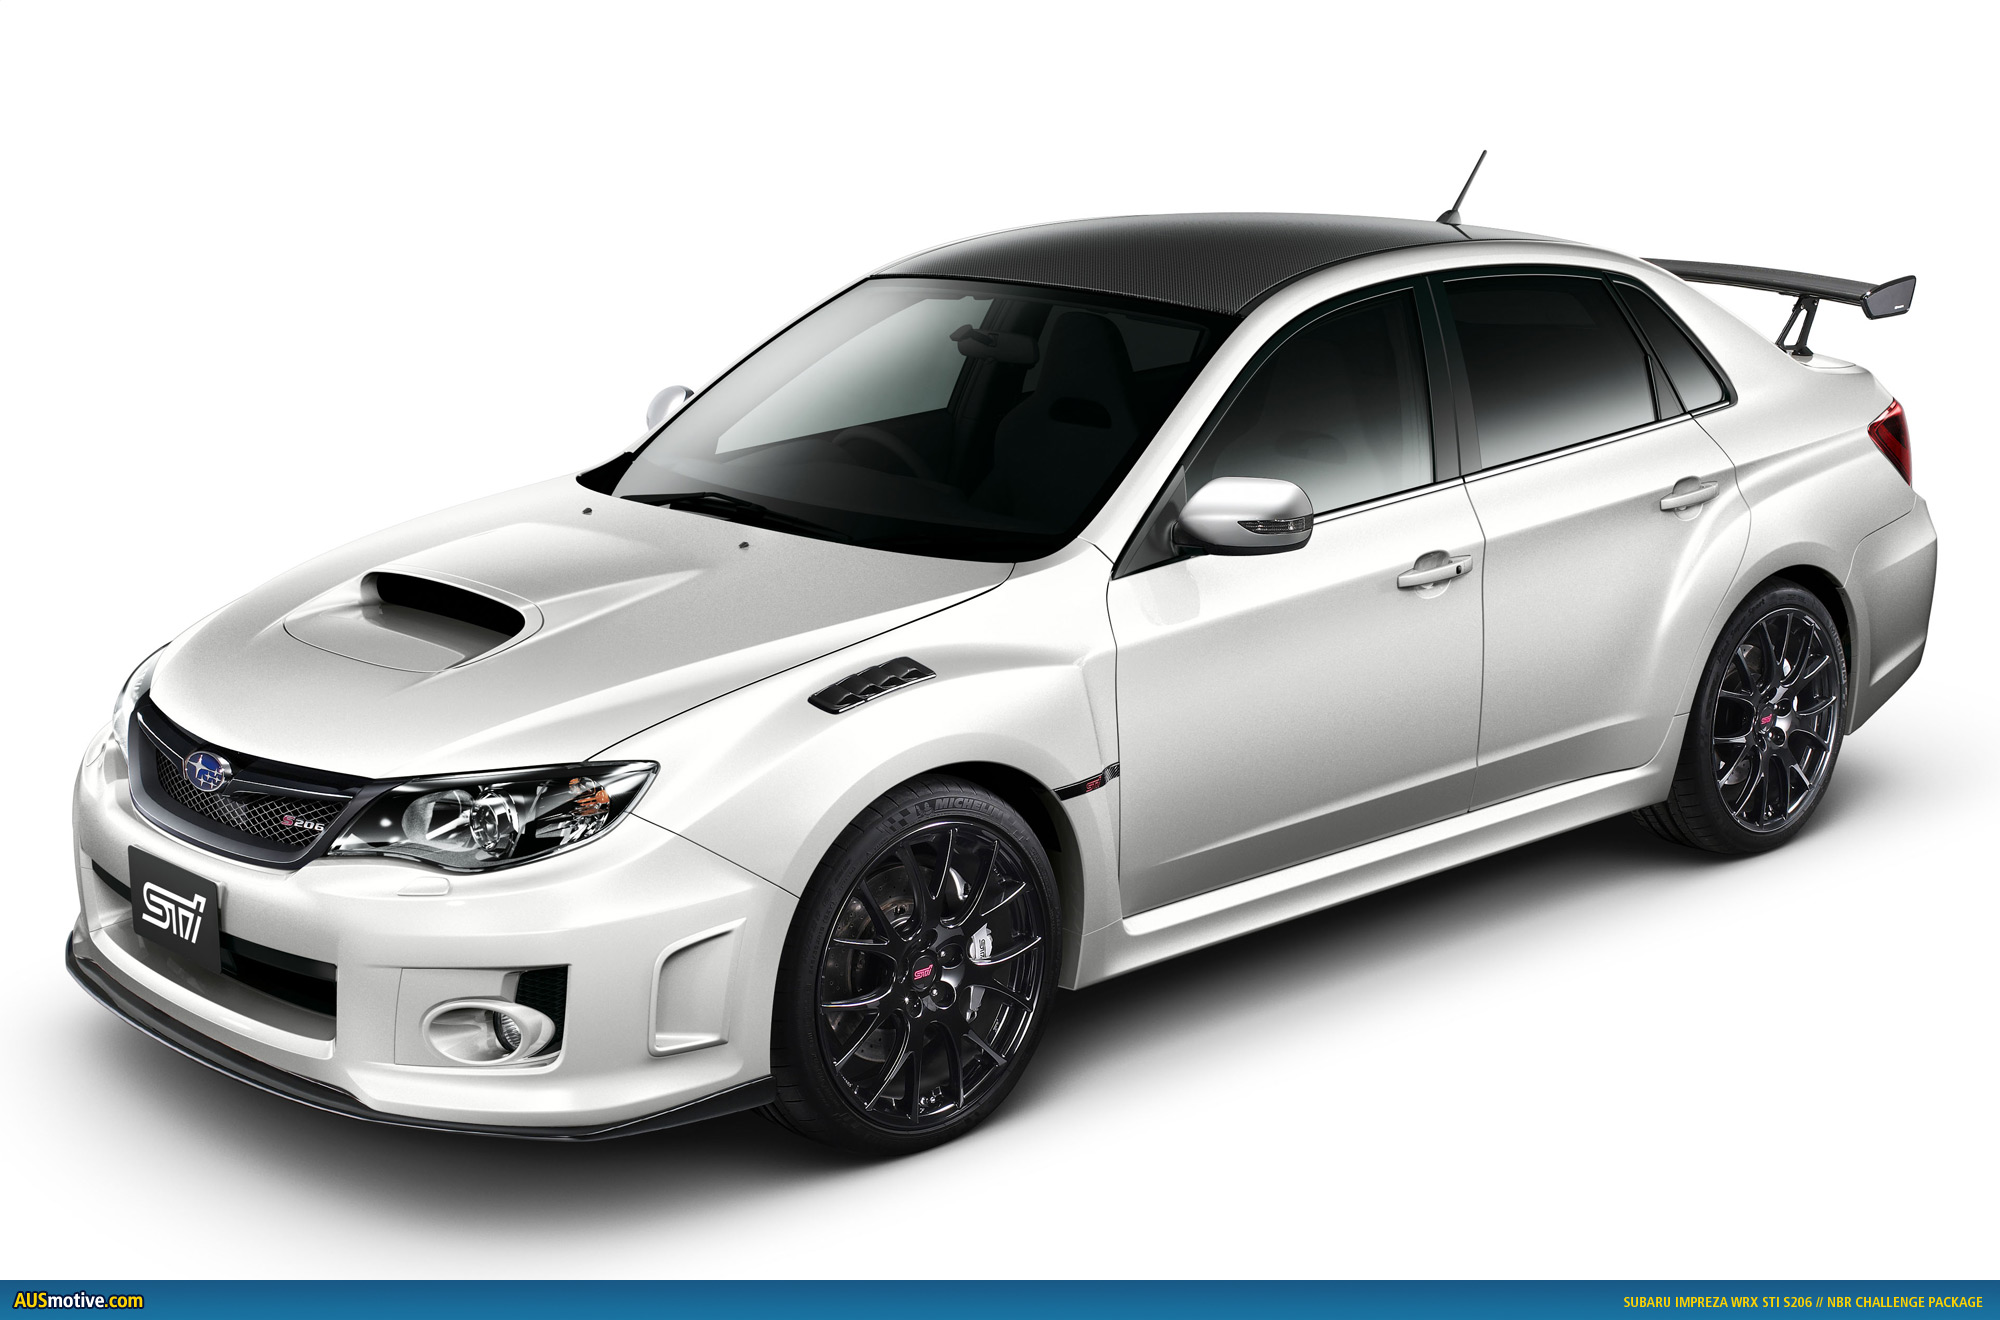 tokyo 2011 subaru impreza wrx sti s206. Black Bedroom Furniture Sets. Home Design Ideas